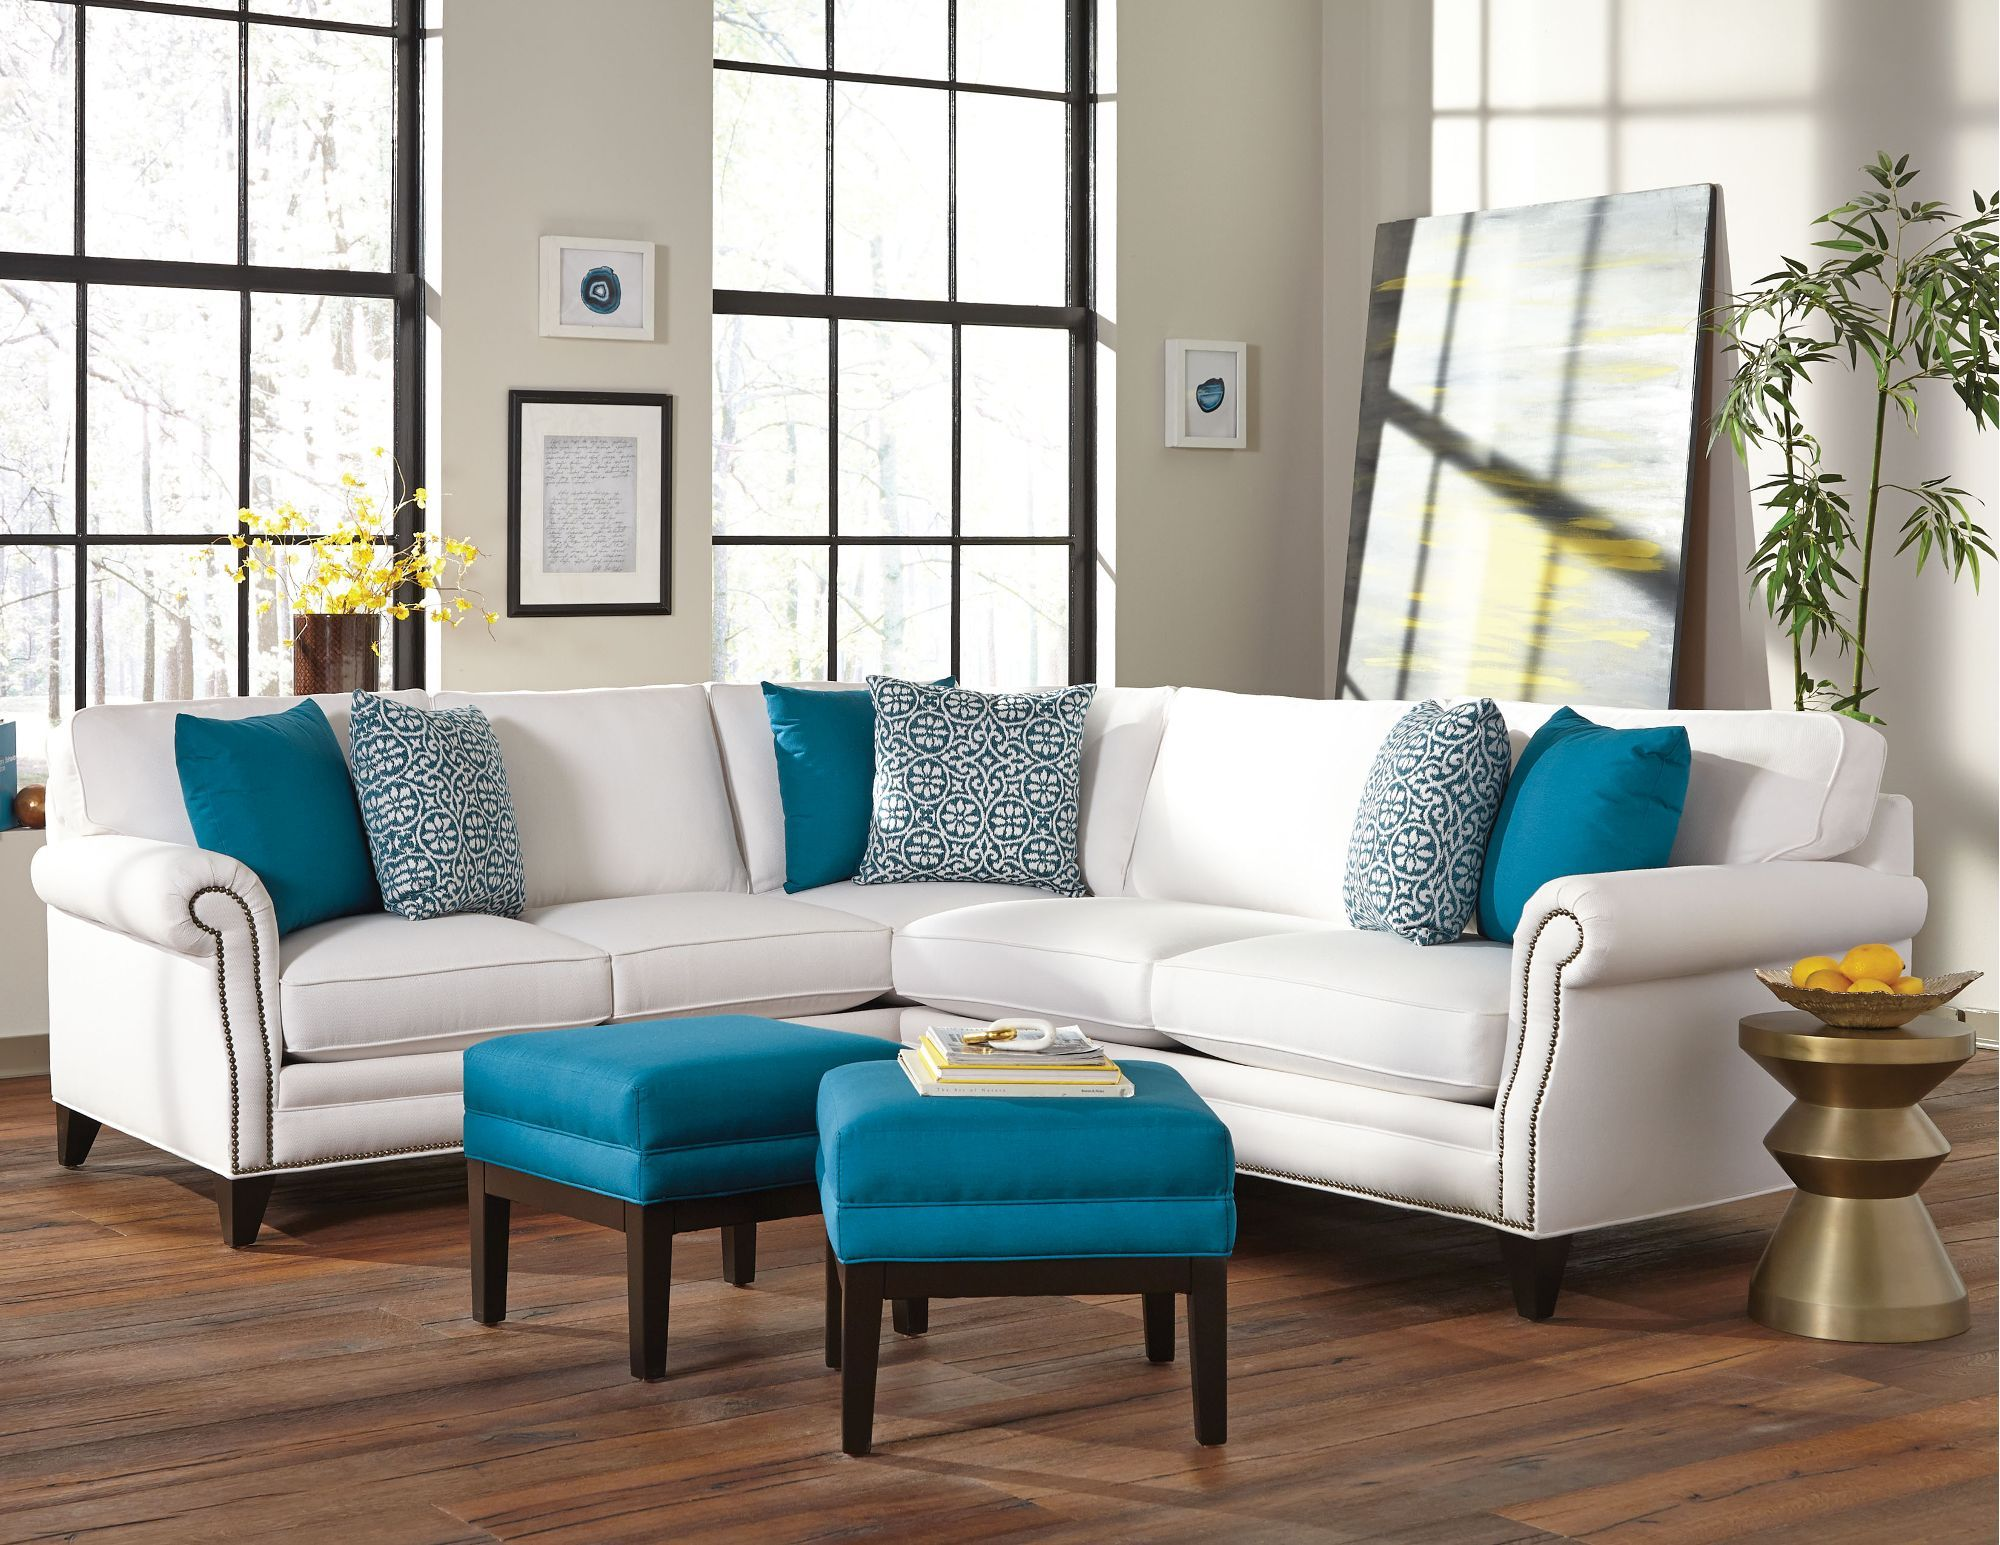 What a beautiful room group! What do you think? Could you picture it ...